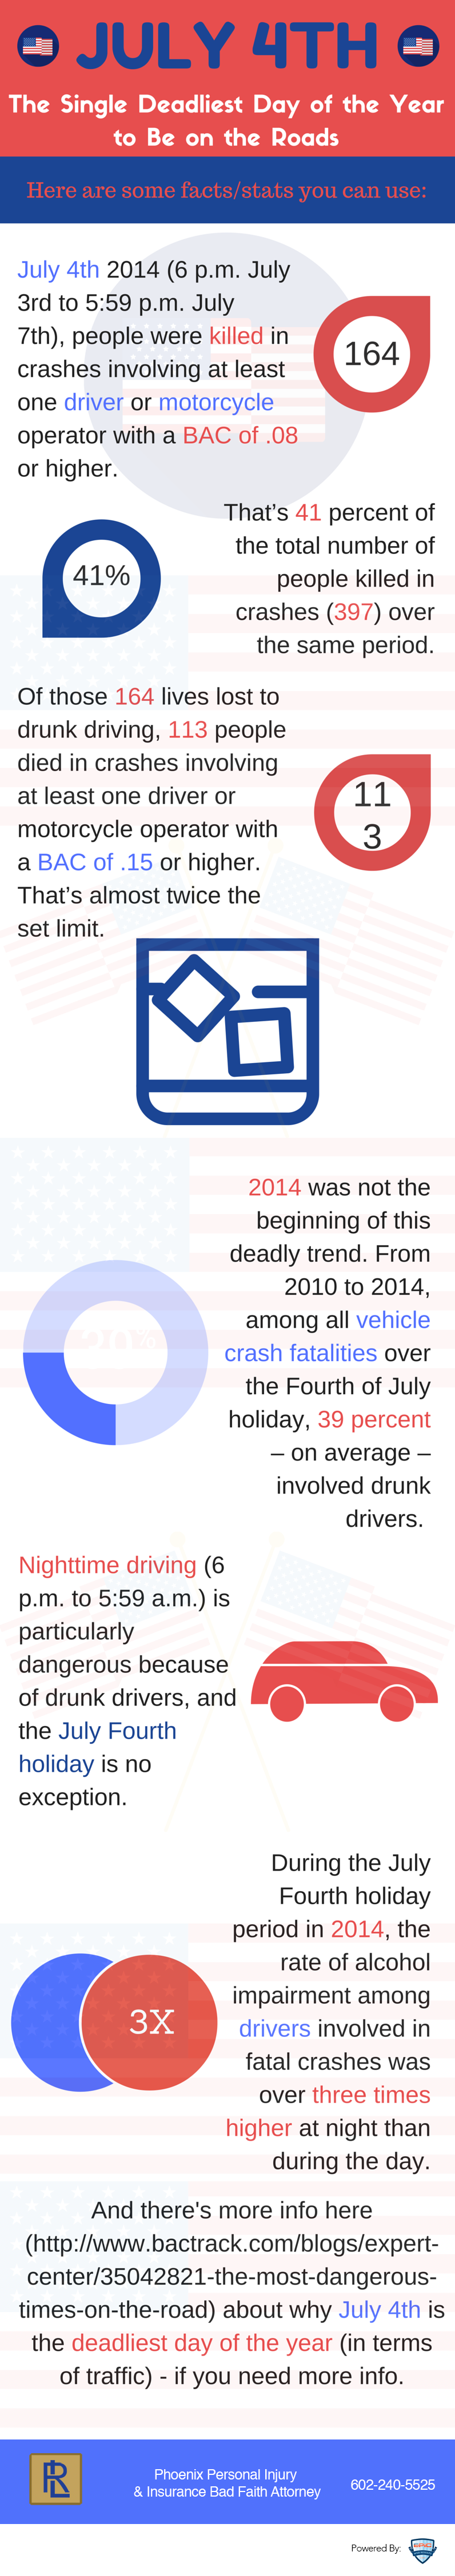 Here's Why July 4th Is the Deadliest Day for Motorists [Infographic]